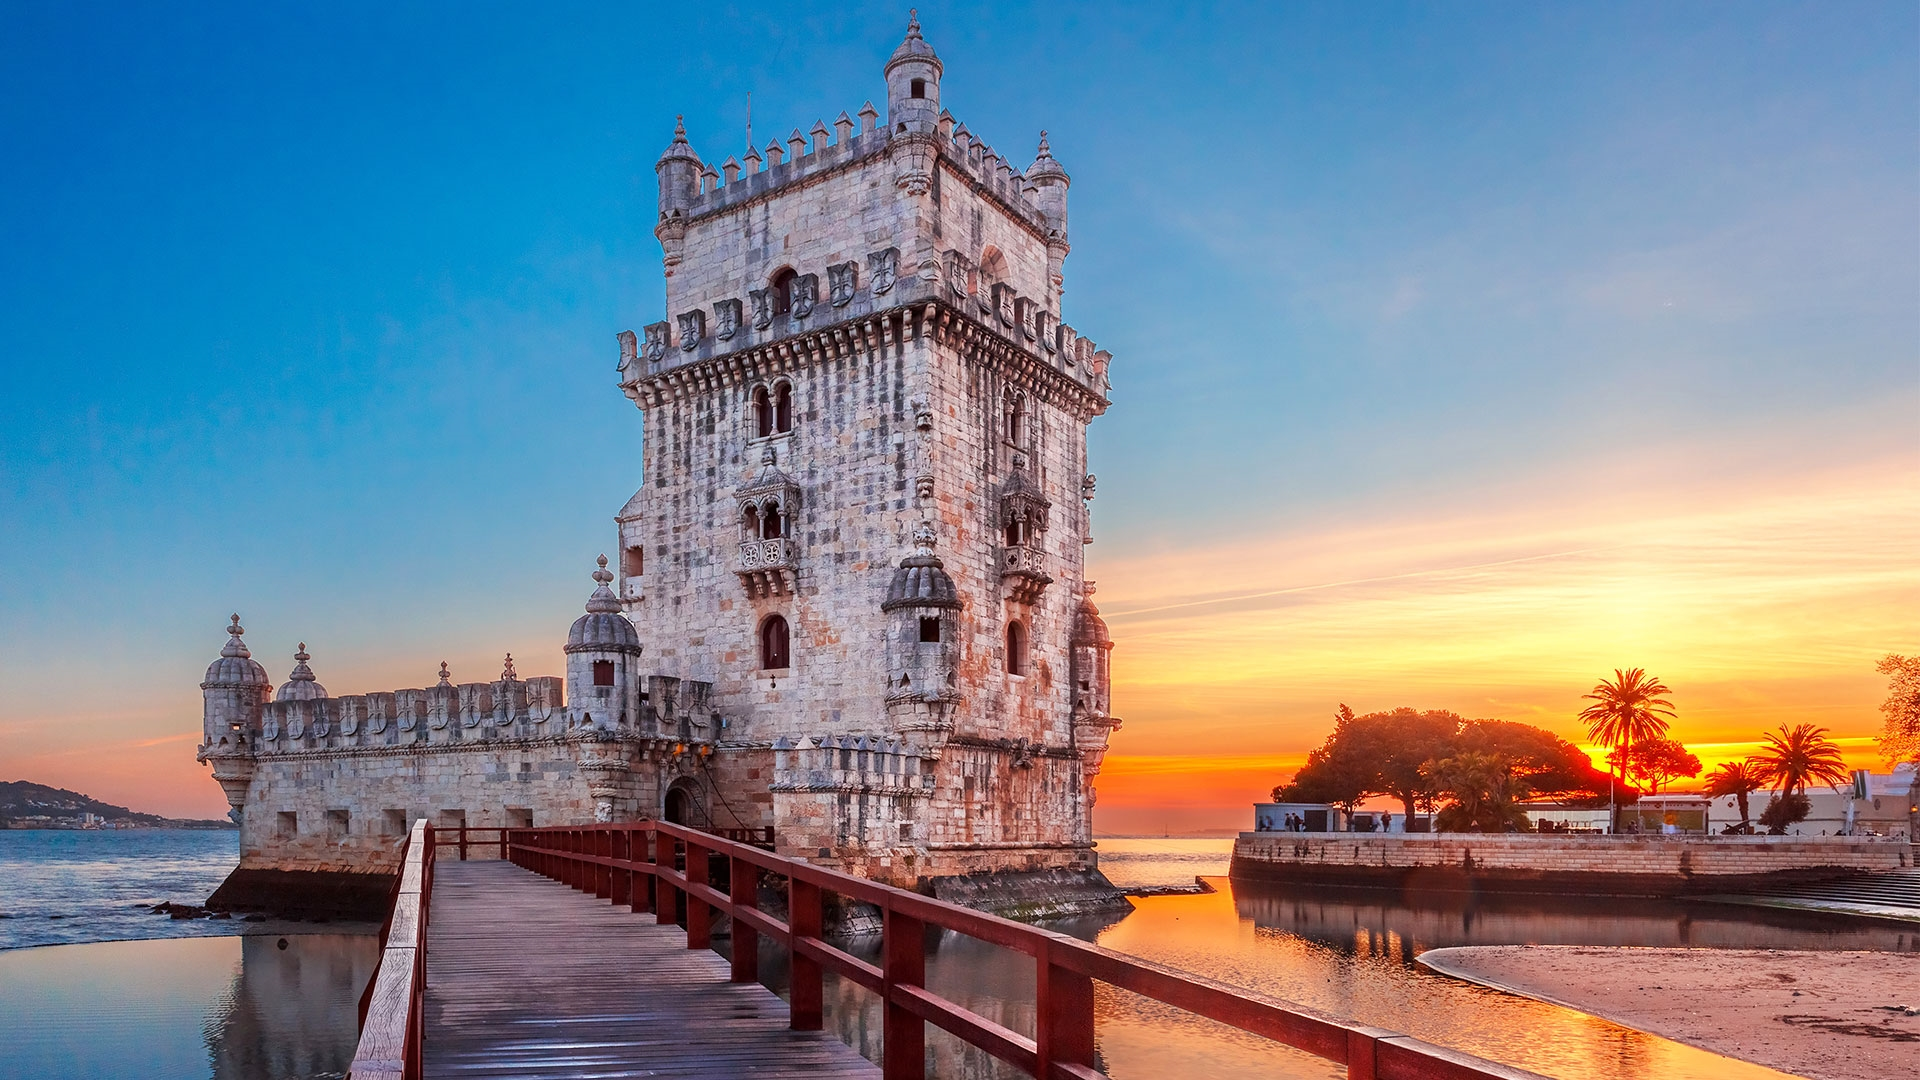 World Heritage by UNESCO in Portugal: A Guided Tour world heritage by unesco in portugal World Heritage by UNESCO in Portugal: A Guided Tour torre de belem6963bf6b